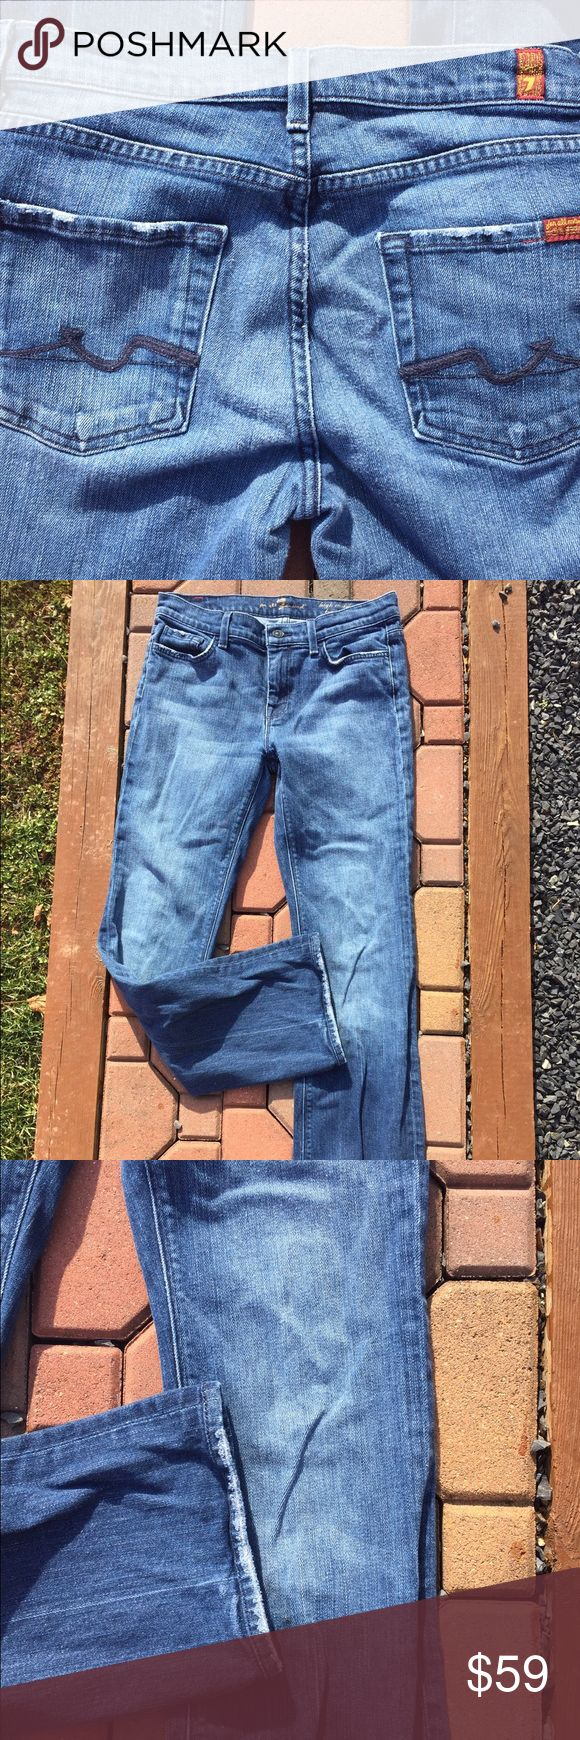 """7 For All Mankind High Waist Bootcut Jeans Size 30 Size 30. Inseam: 30"""". Super gently preowned. Has intended Distressed look on pockets and bottoms of legs. Be sure to view the other items in our closet. We offer both women's and Mens items in a variety of sizes. Bundle and save!! Thank you for viewing our item!! 7 For All Mankind Jeans Boot Cut"""